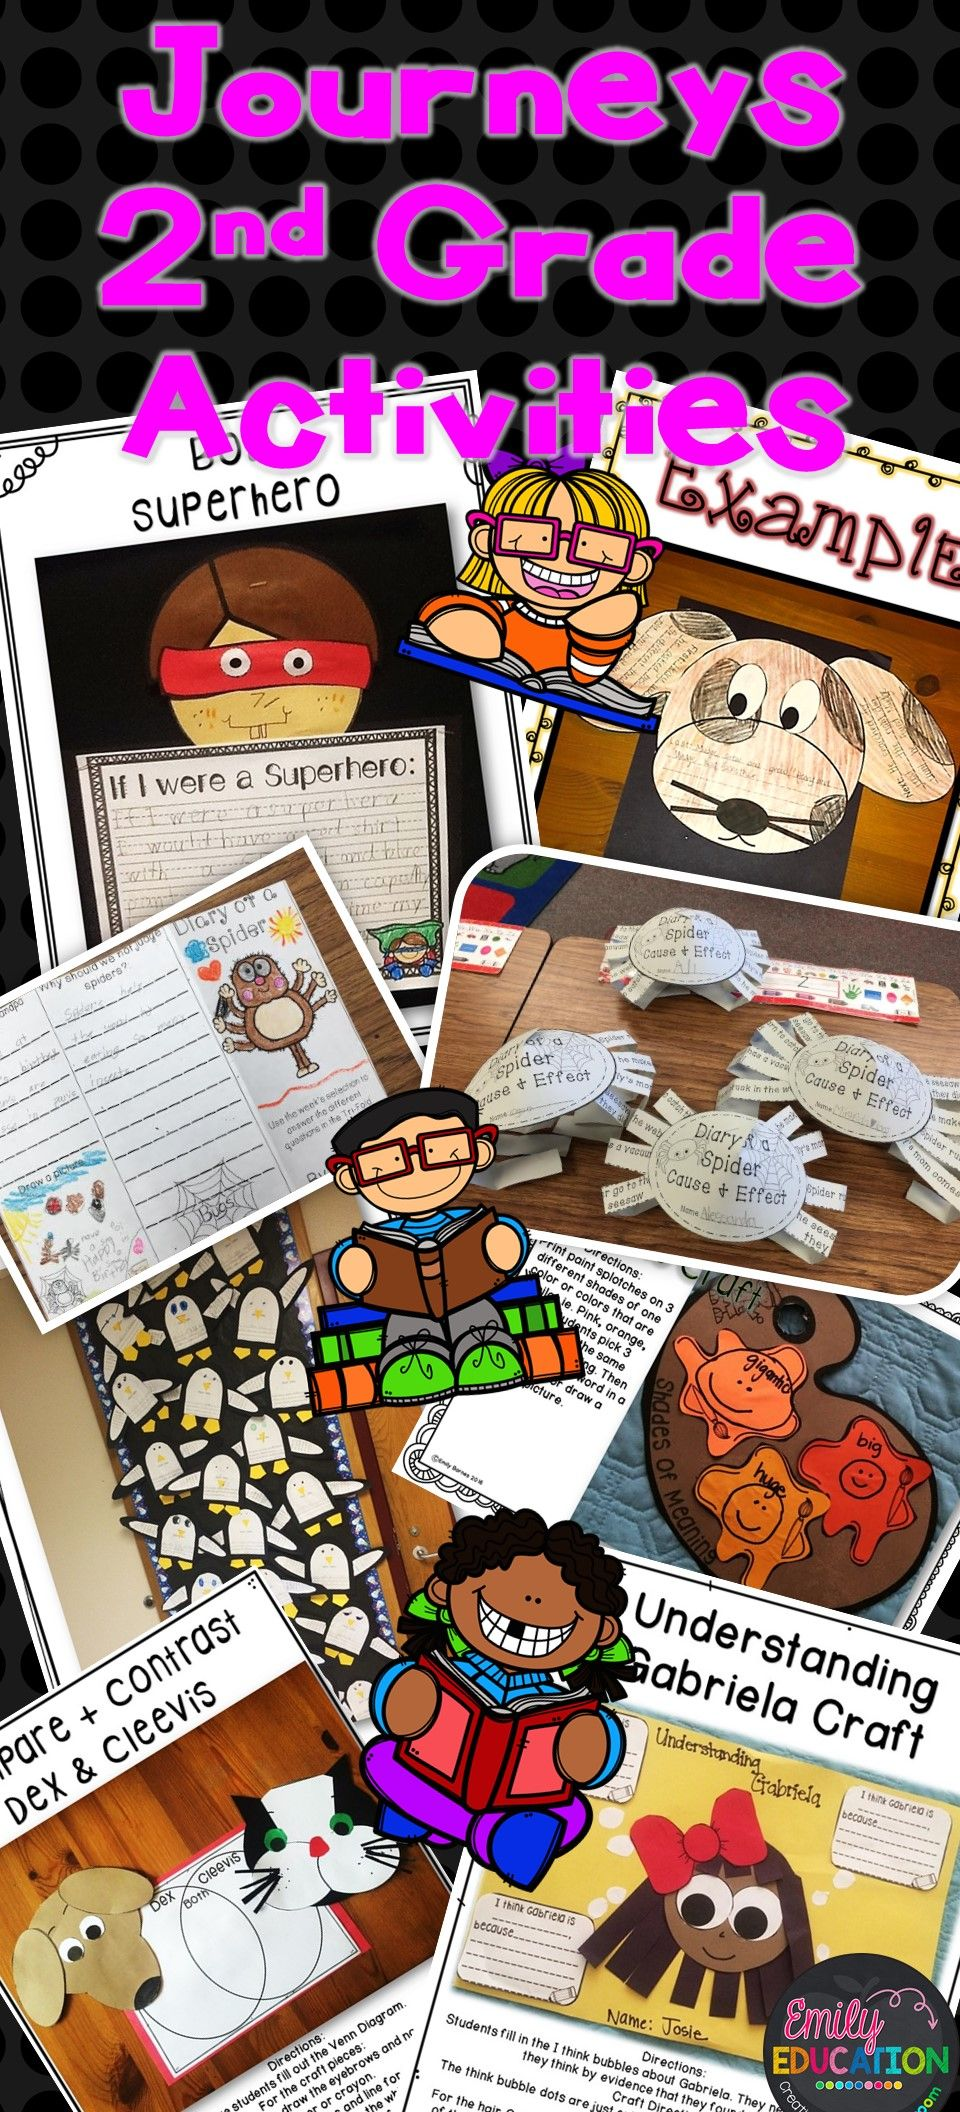 Powers of 10 math face off 5nbt2 journeys reading series journeys 2nd grade supplement activities this seller has so many creative activities to help supplement fandeluxe Images